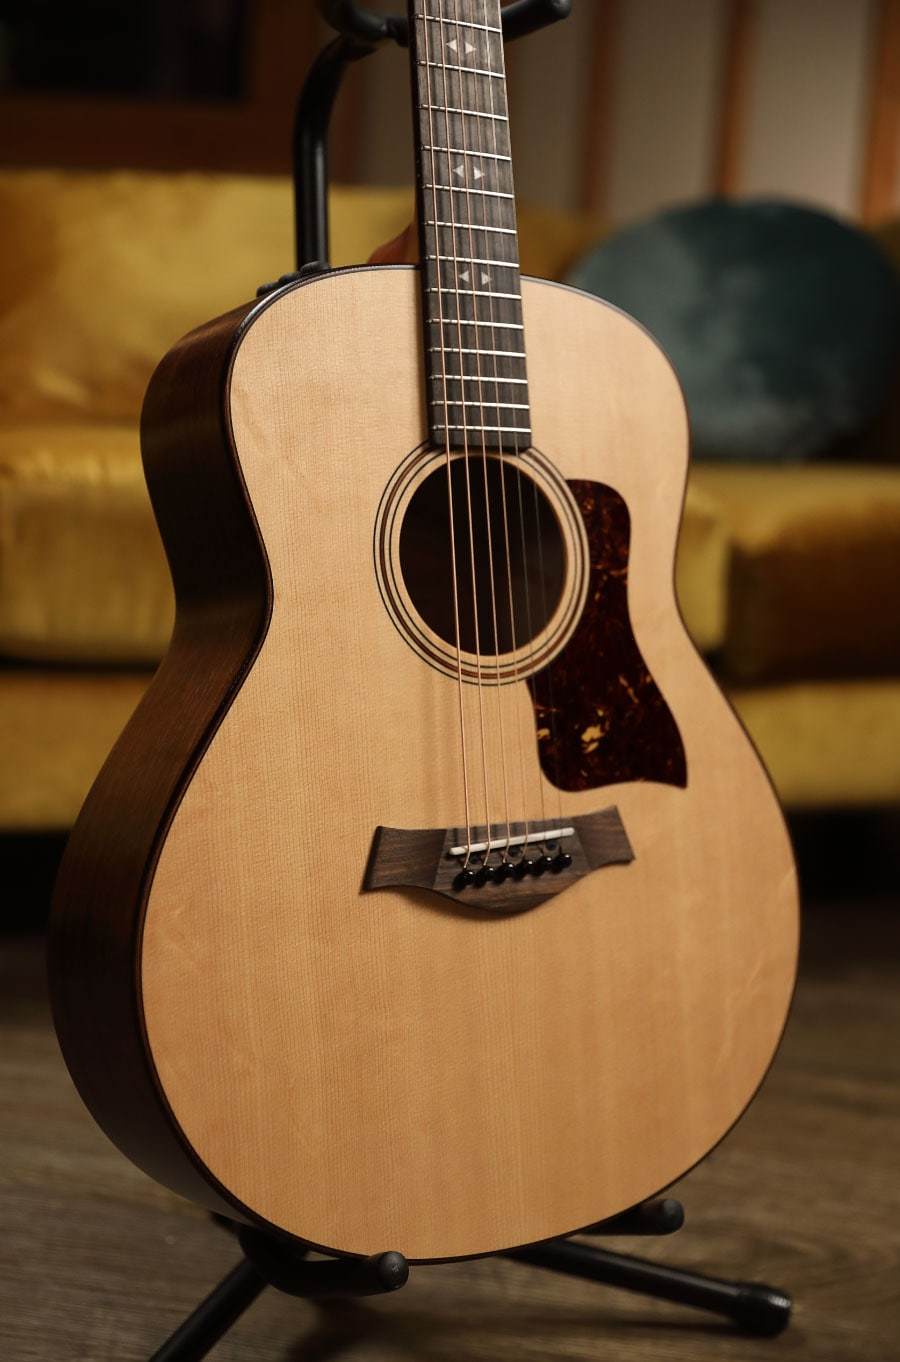 Taylor GTe Urban Ash Grand Theater Body